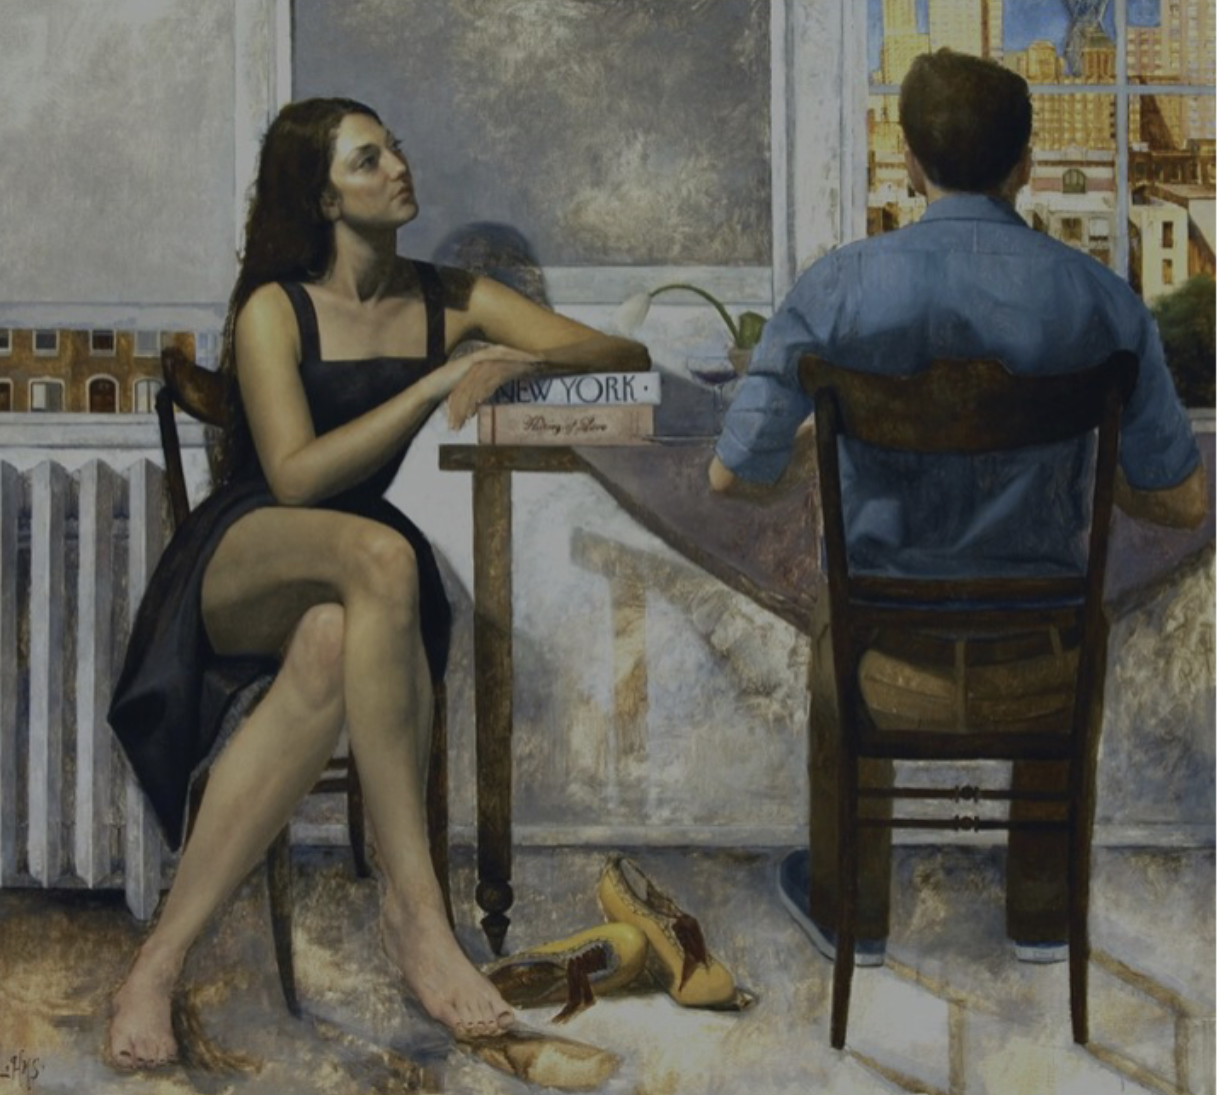 I Heart New York, or Man and Woman at Table by Hyeseung Marriage-Song